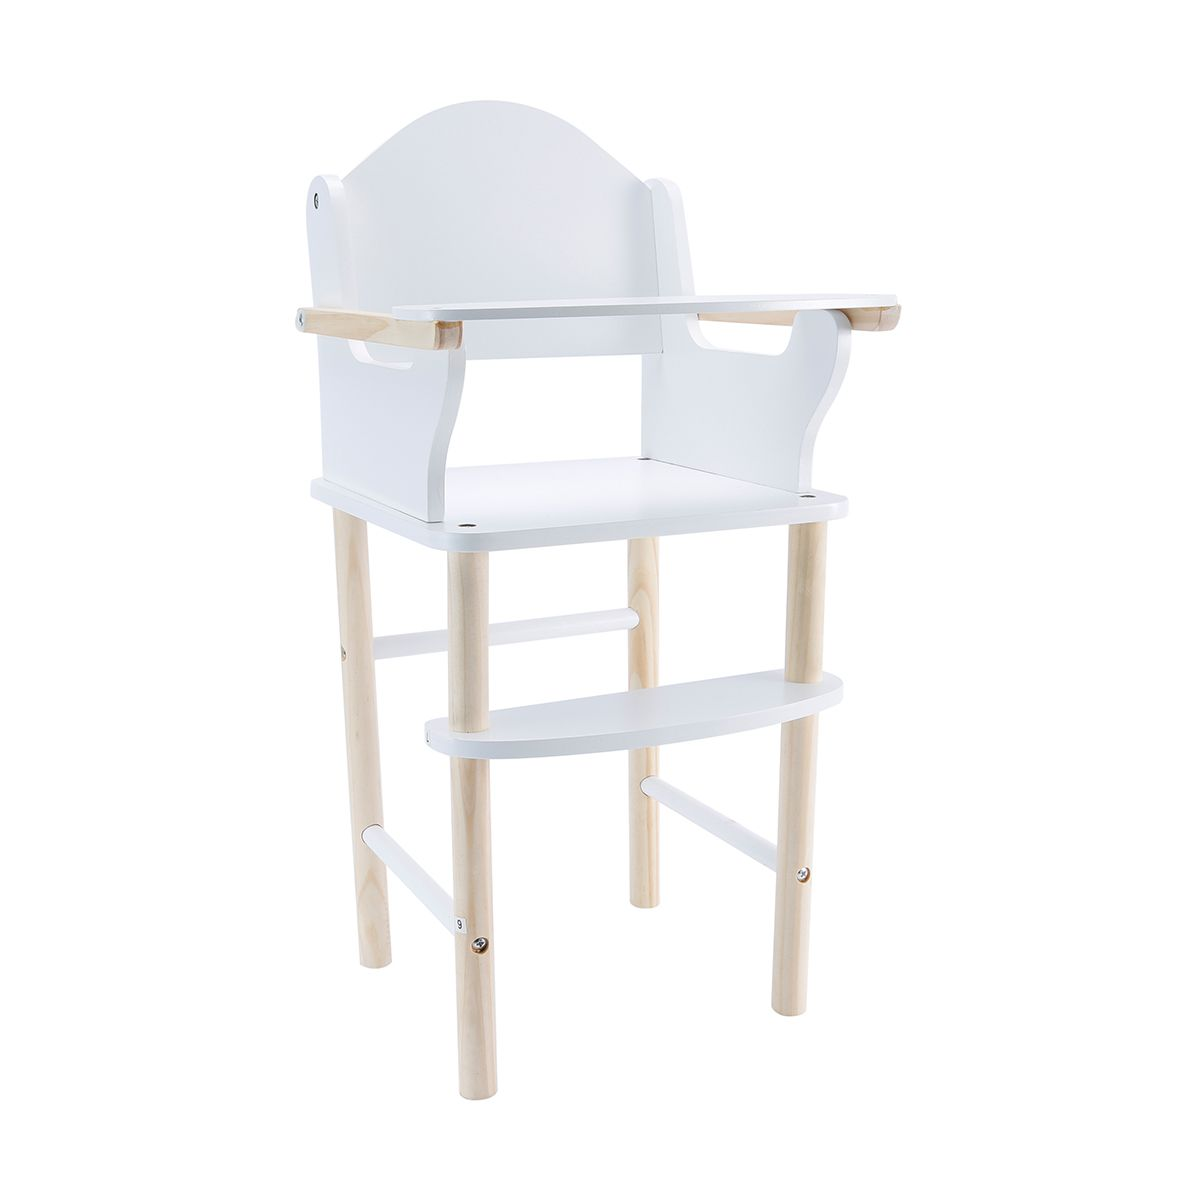 High Chair Kmart Wooden Highchair Baby S Kitchen Chair Furniture Nursery